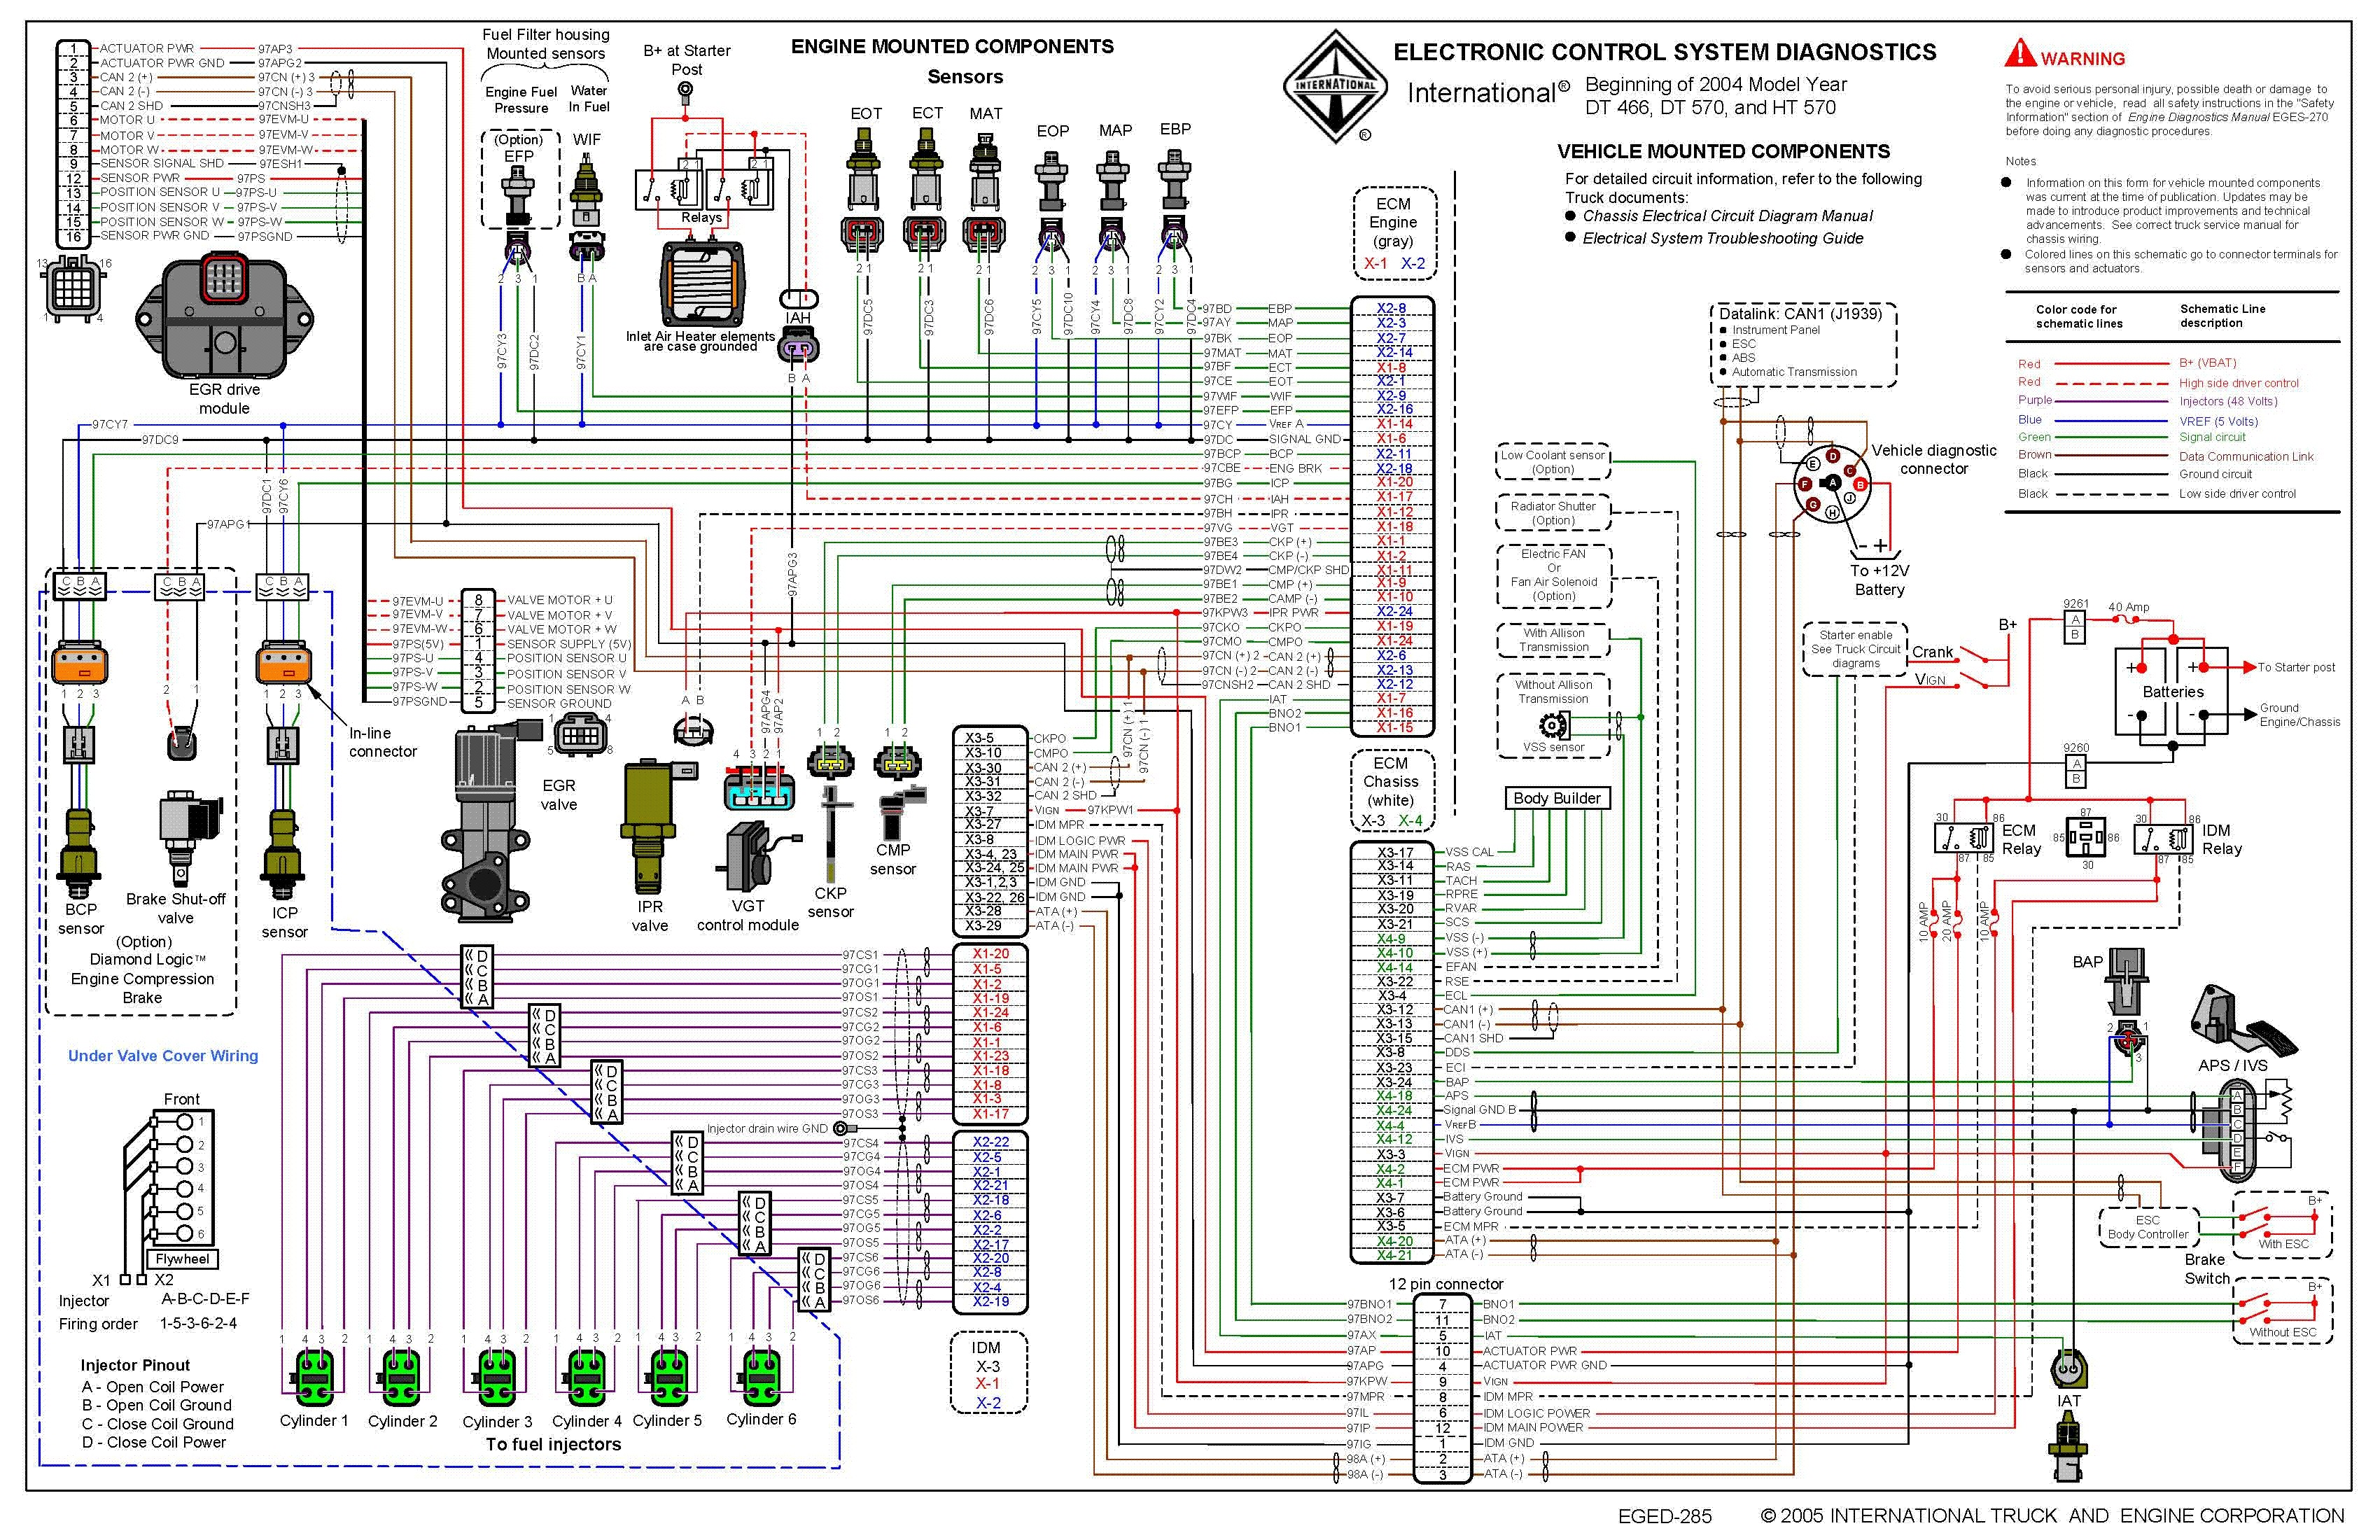 Ih 584 Wiring Diagram | Wiring Diagram Ih Wiring Diagram on